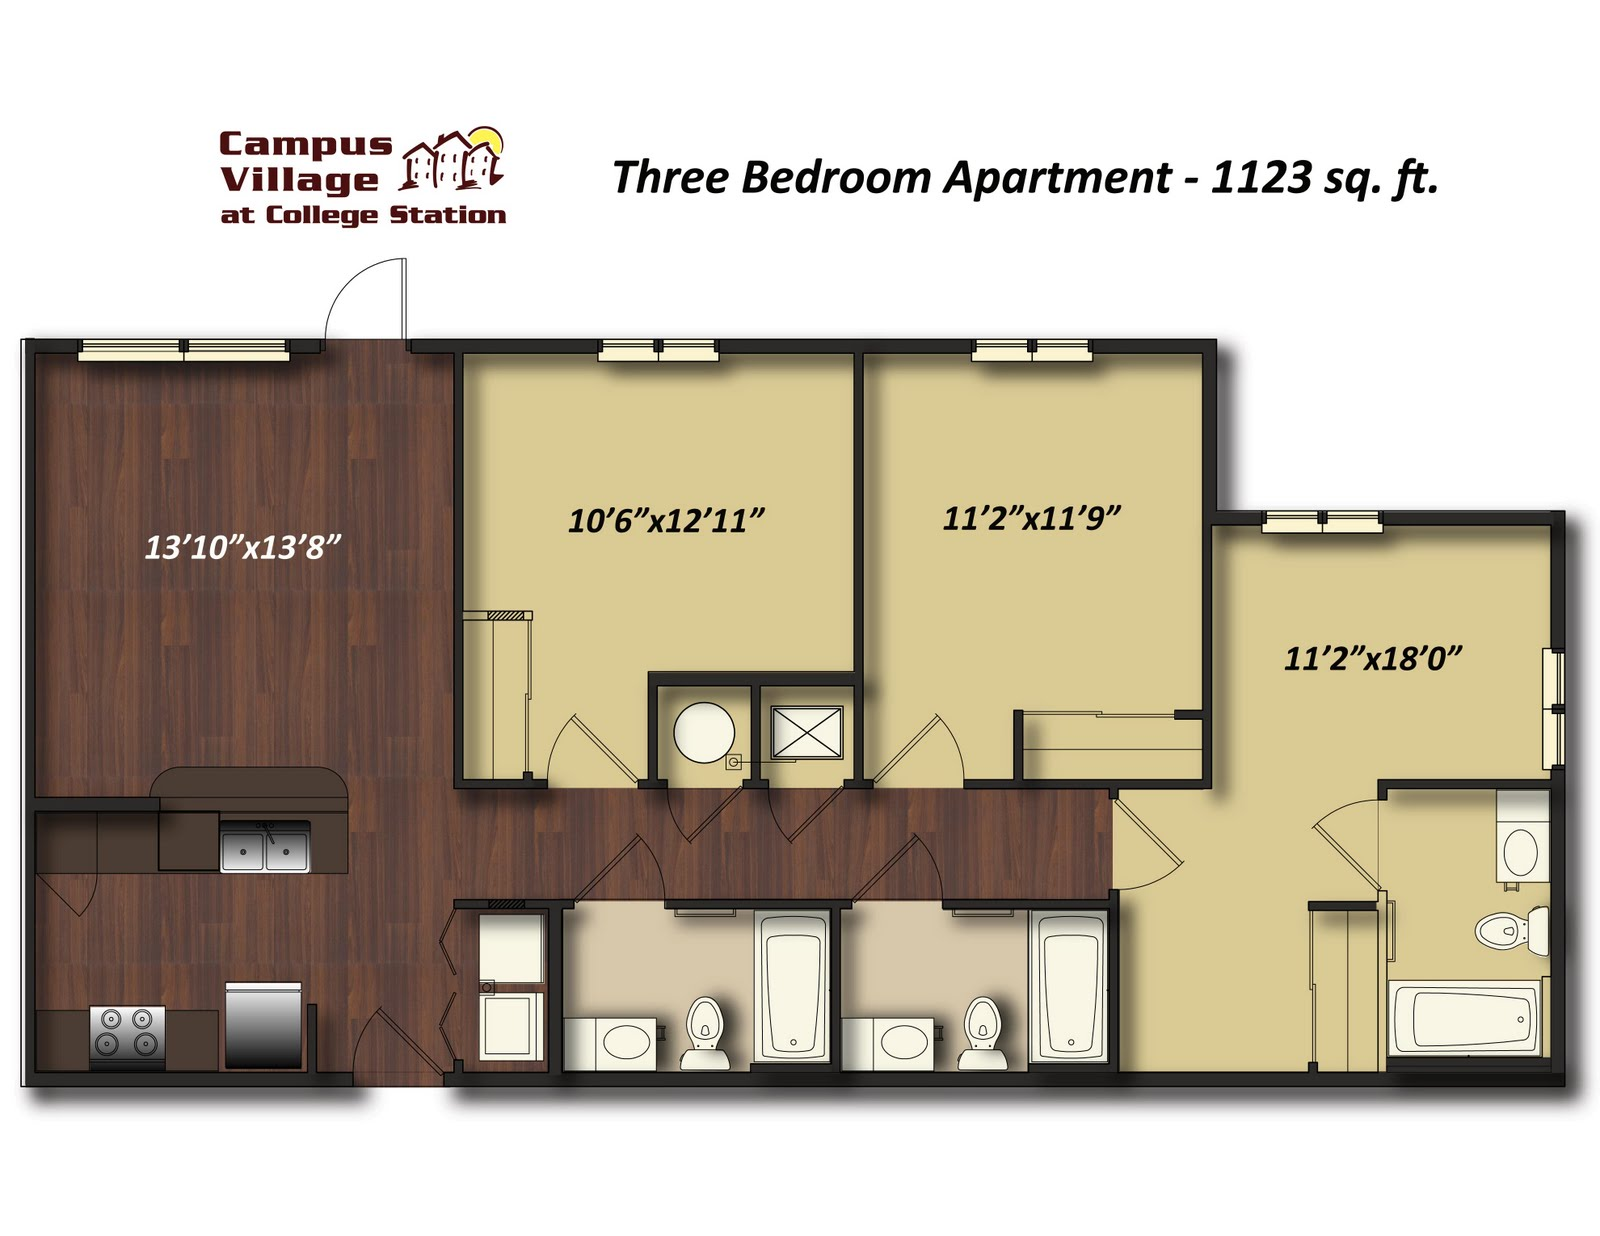 3 bedroom apartments in college station. One Bedroom Apartments College Station amazing pictures